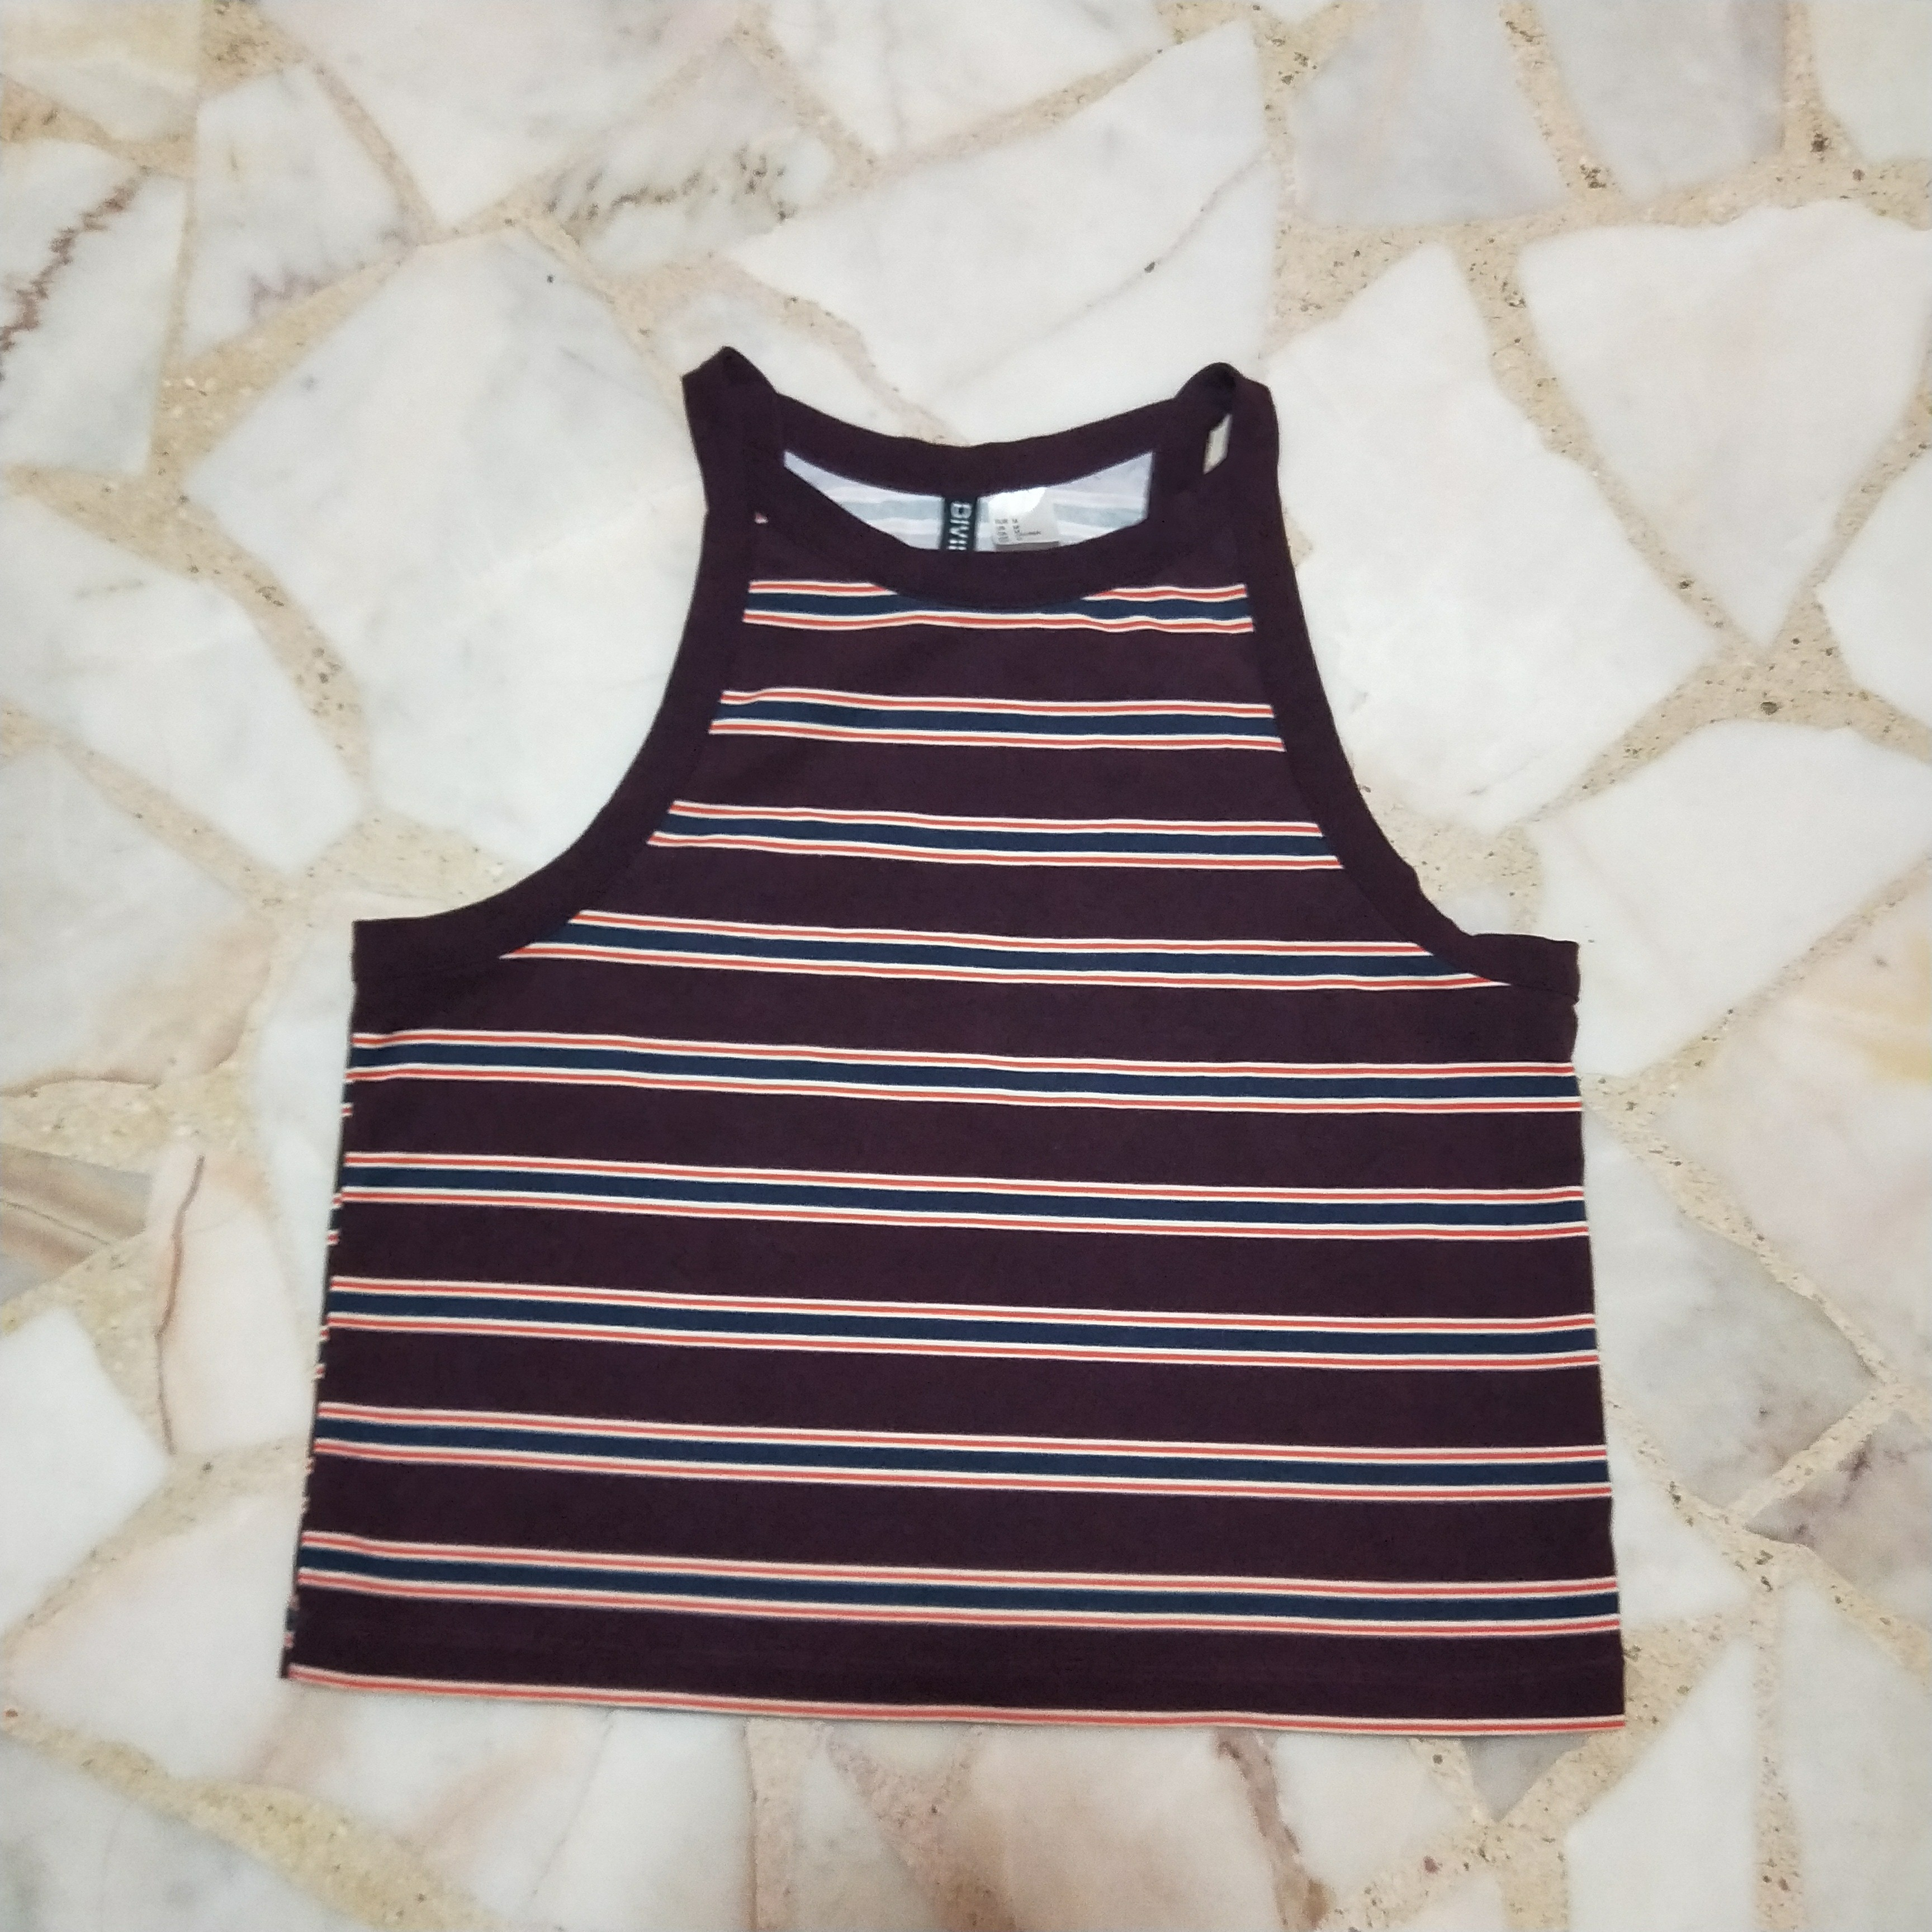 8779274cb44a0 Parallel Striped Maroon Halter Top, Women's Fashion, Clothes, Tops ...